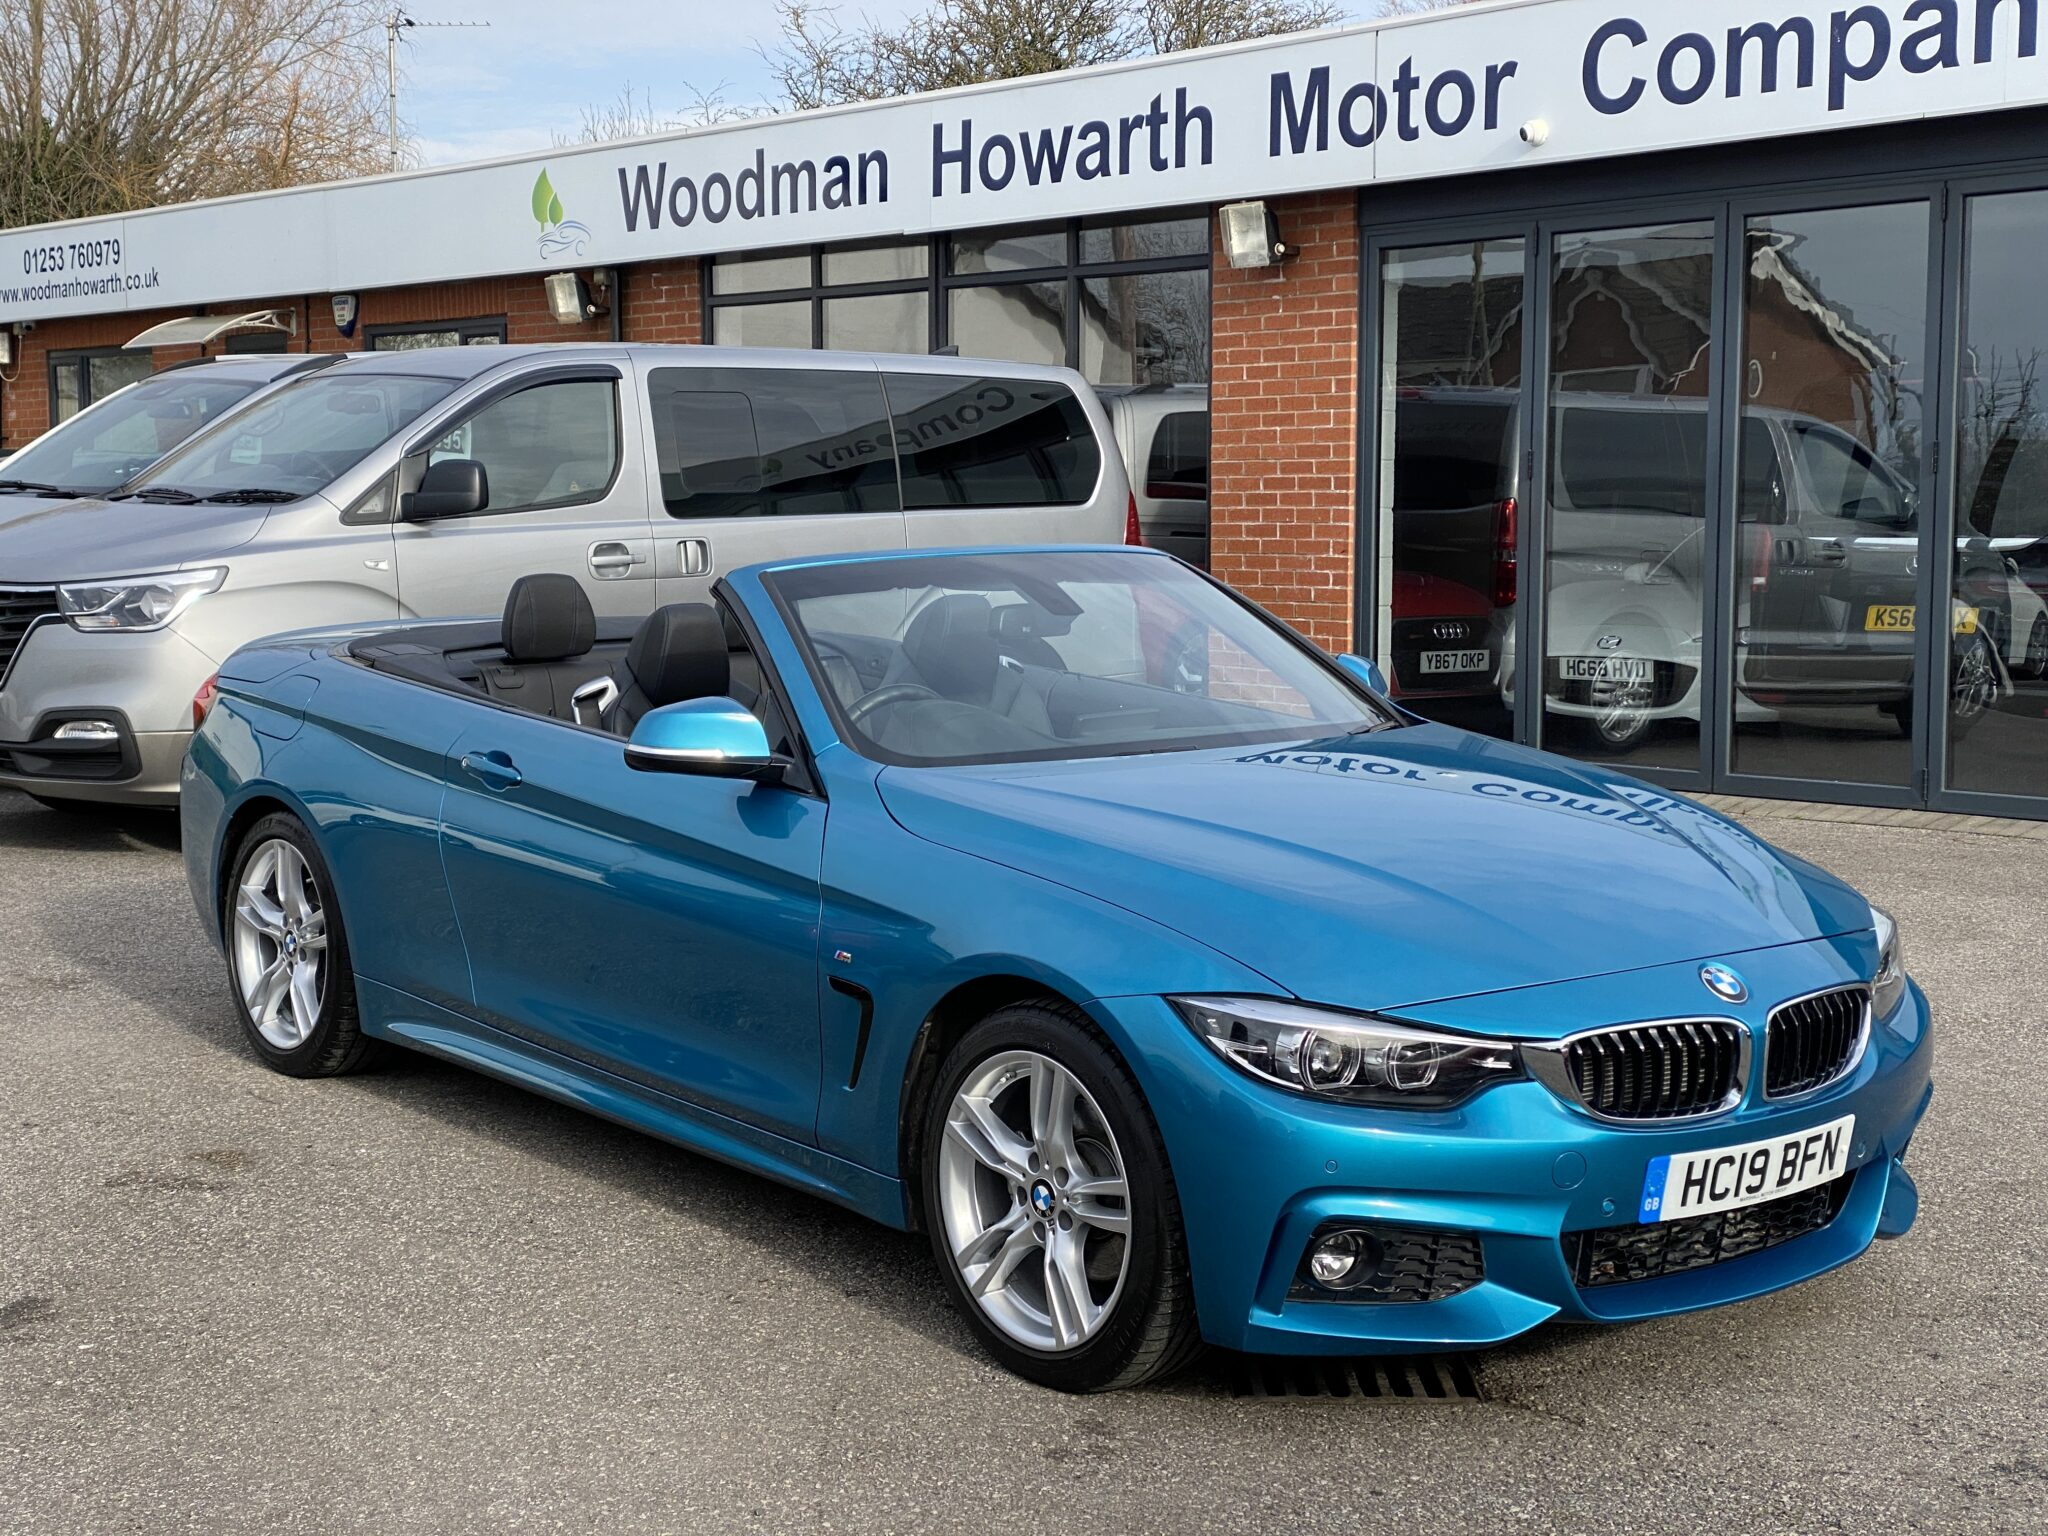 2019 19 BMW 420D M SPORT CONVERTIBLE AUTOMATIC Only 11k Mls Leather Navigation Excellent Value